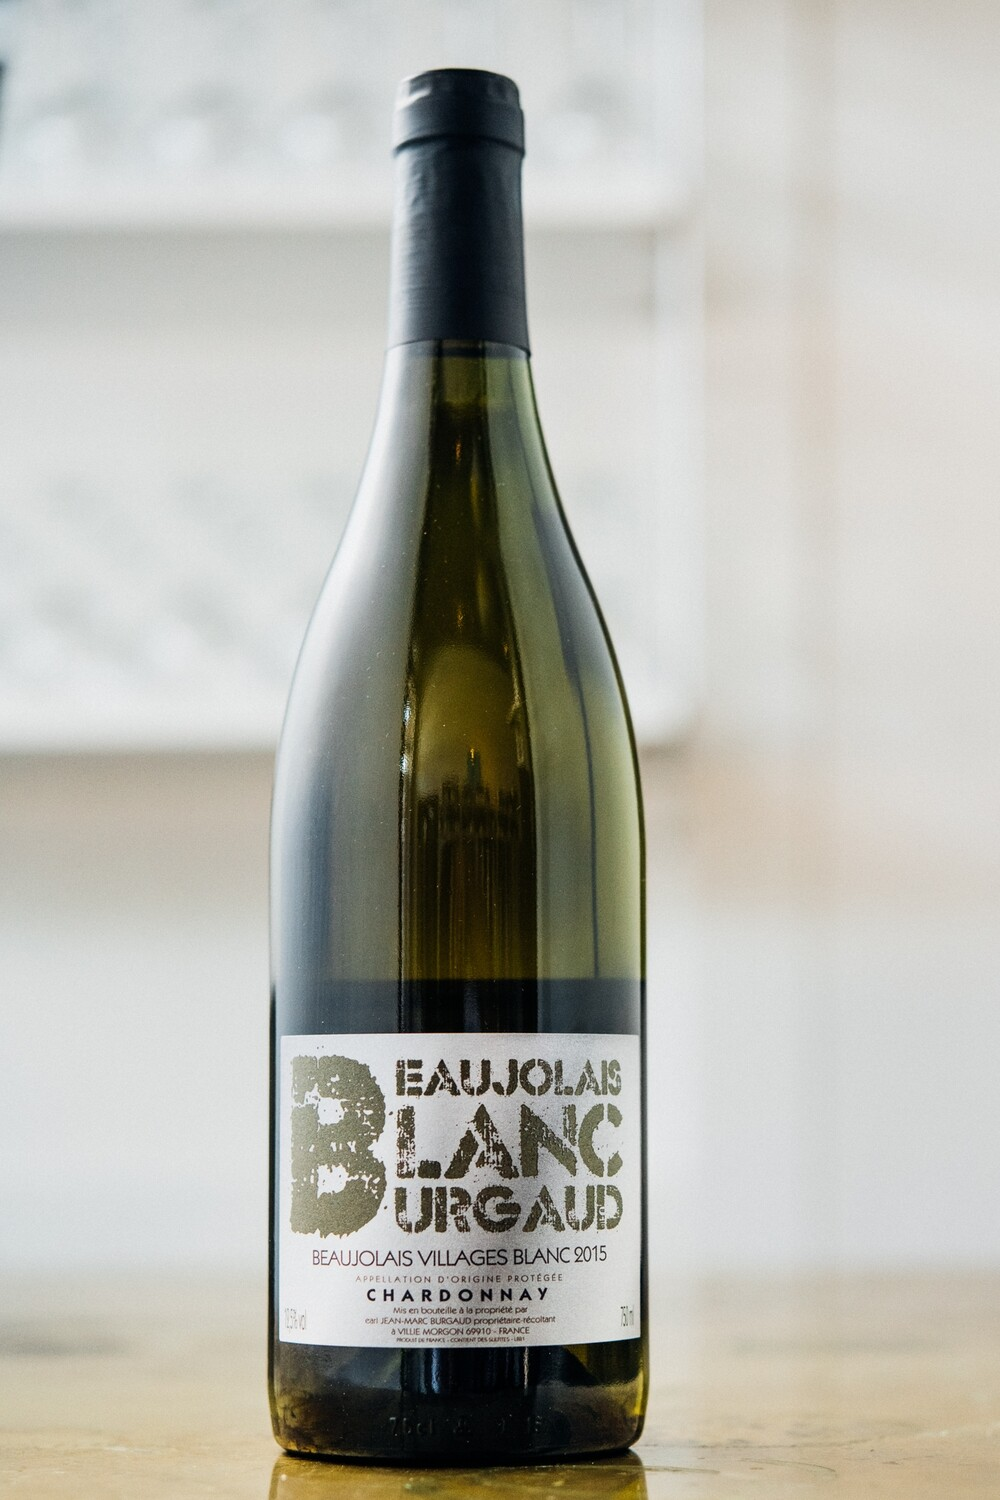 Jean-Marc Burgaud - Beaujolais-Villages Blanc (2015)